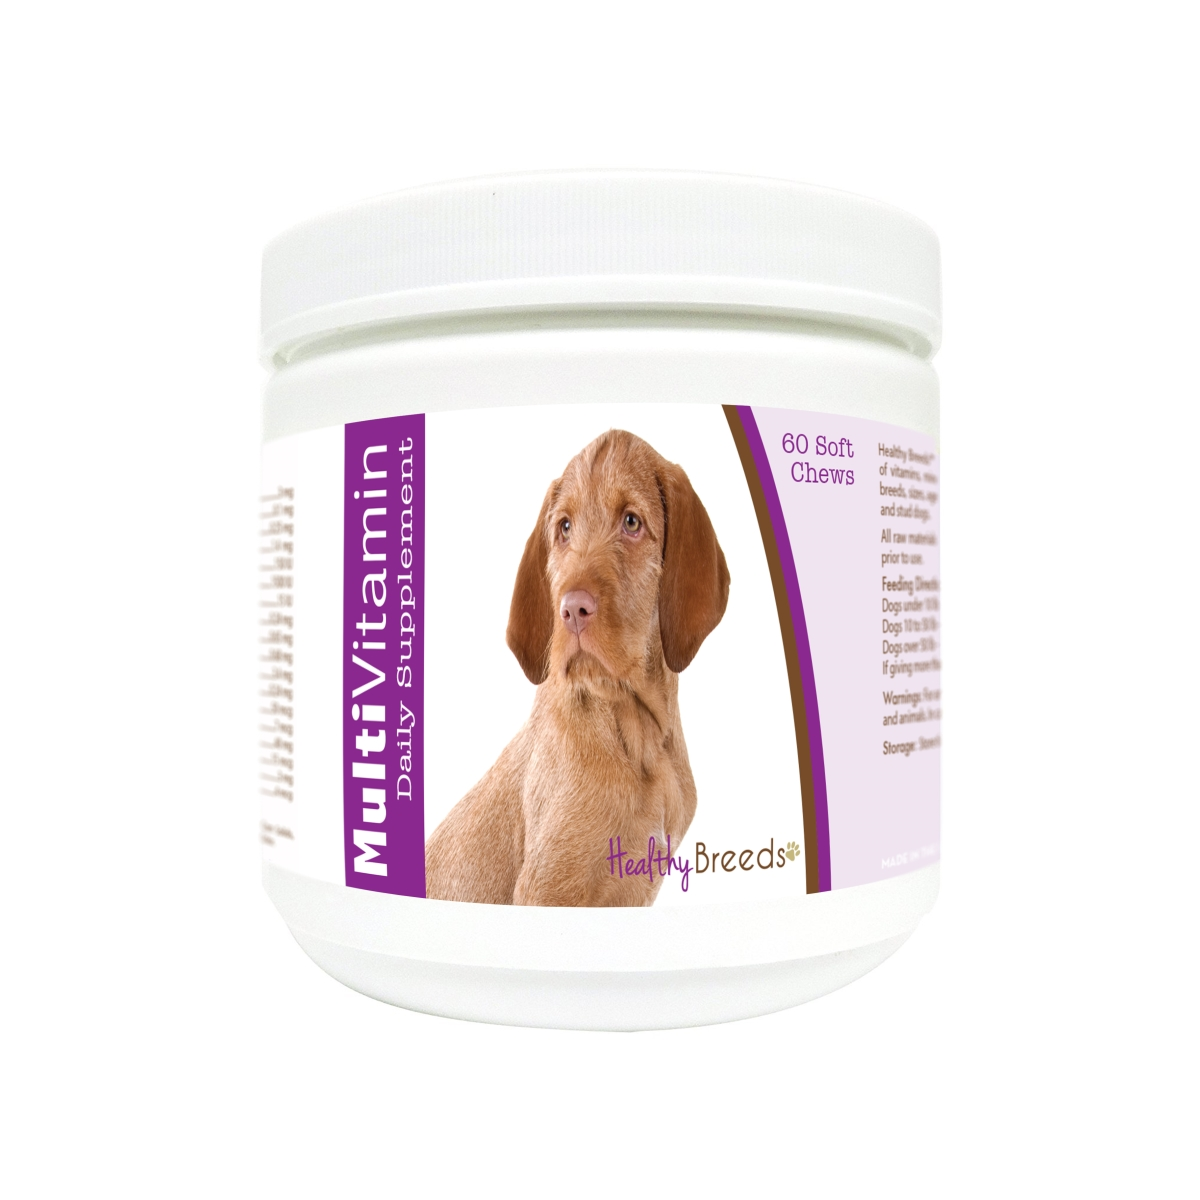 Healthy Breeds 840235172505 Wirehaired Vizsla Multi-Vitamin Soft Chews - 60 Count